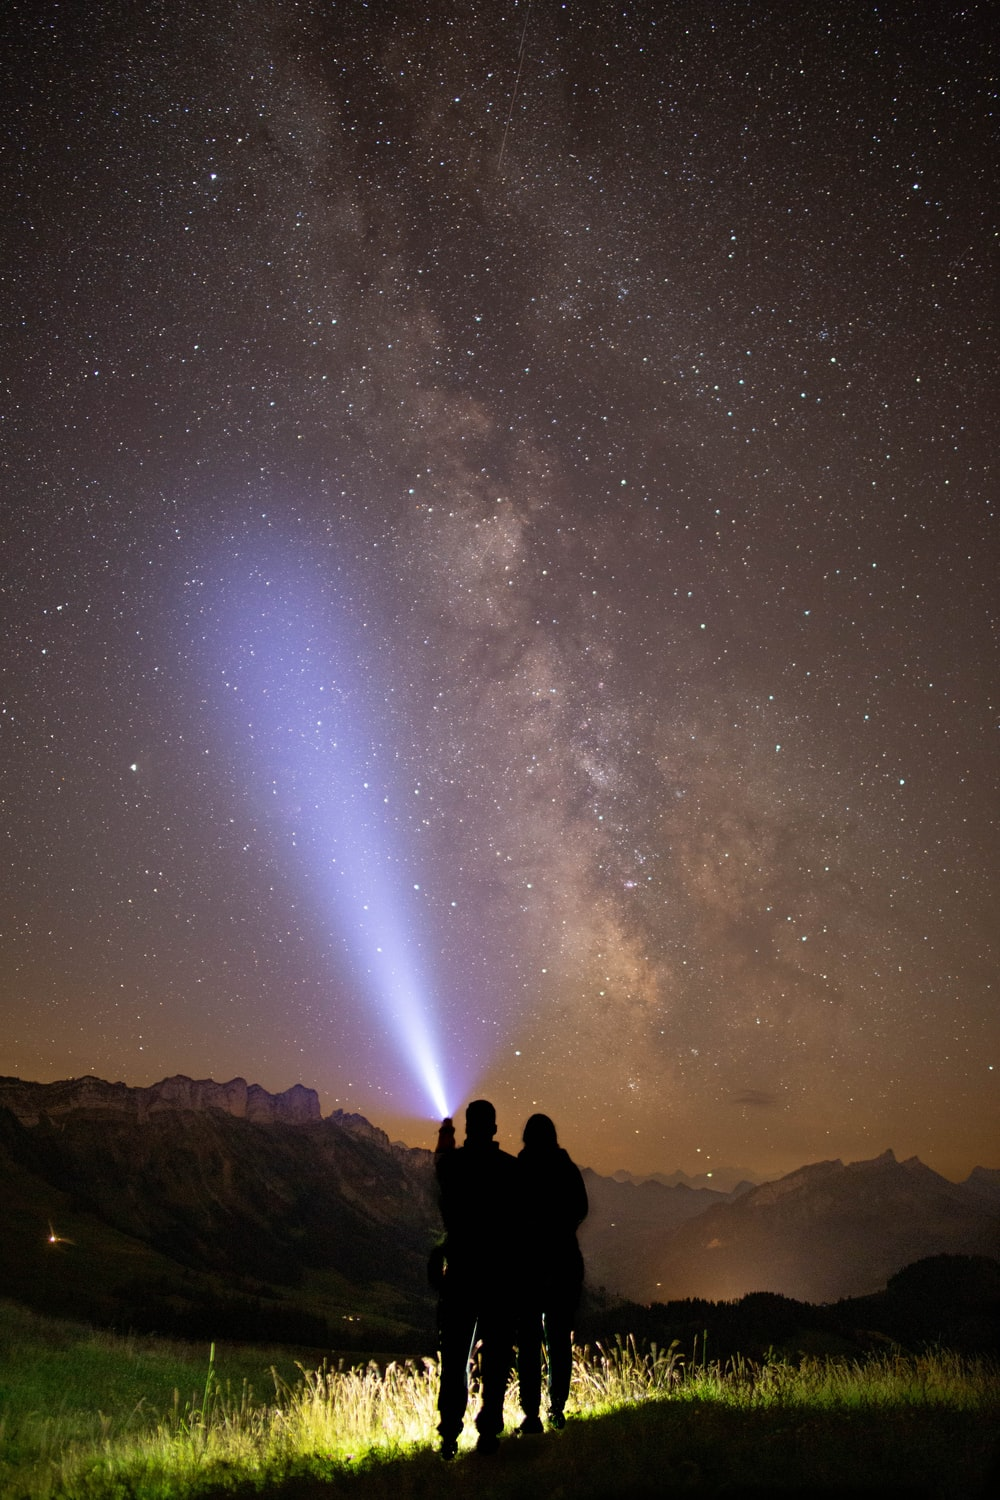 silhouette of 2 person sitting on rock under starry night